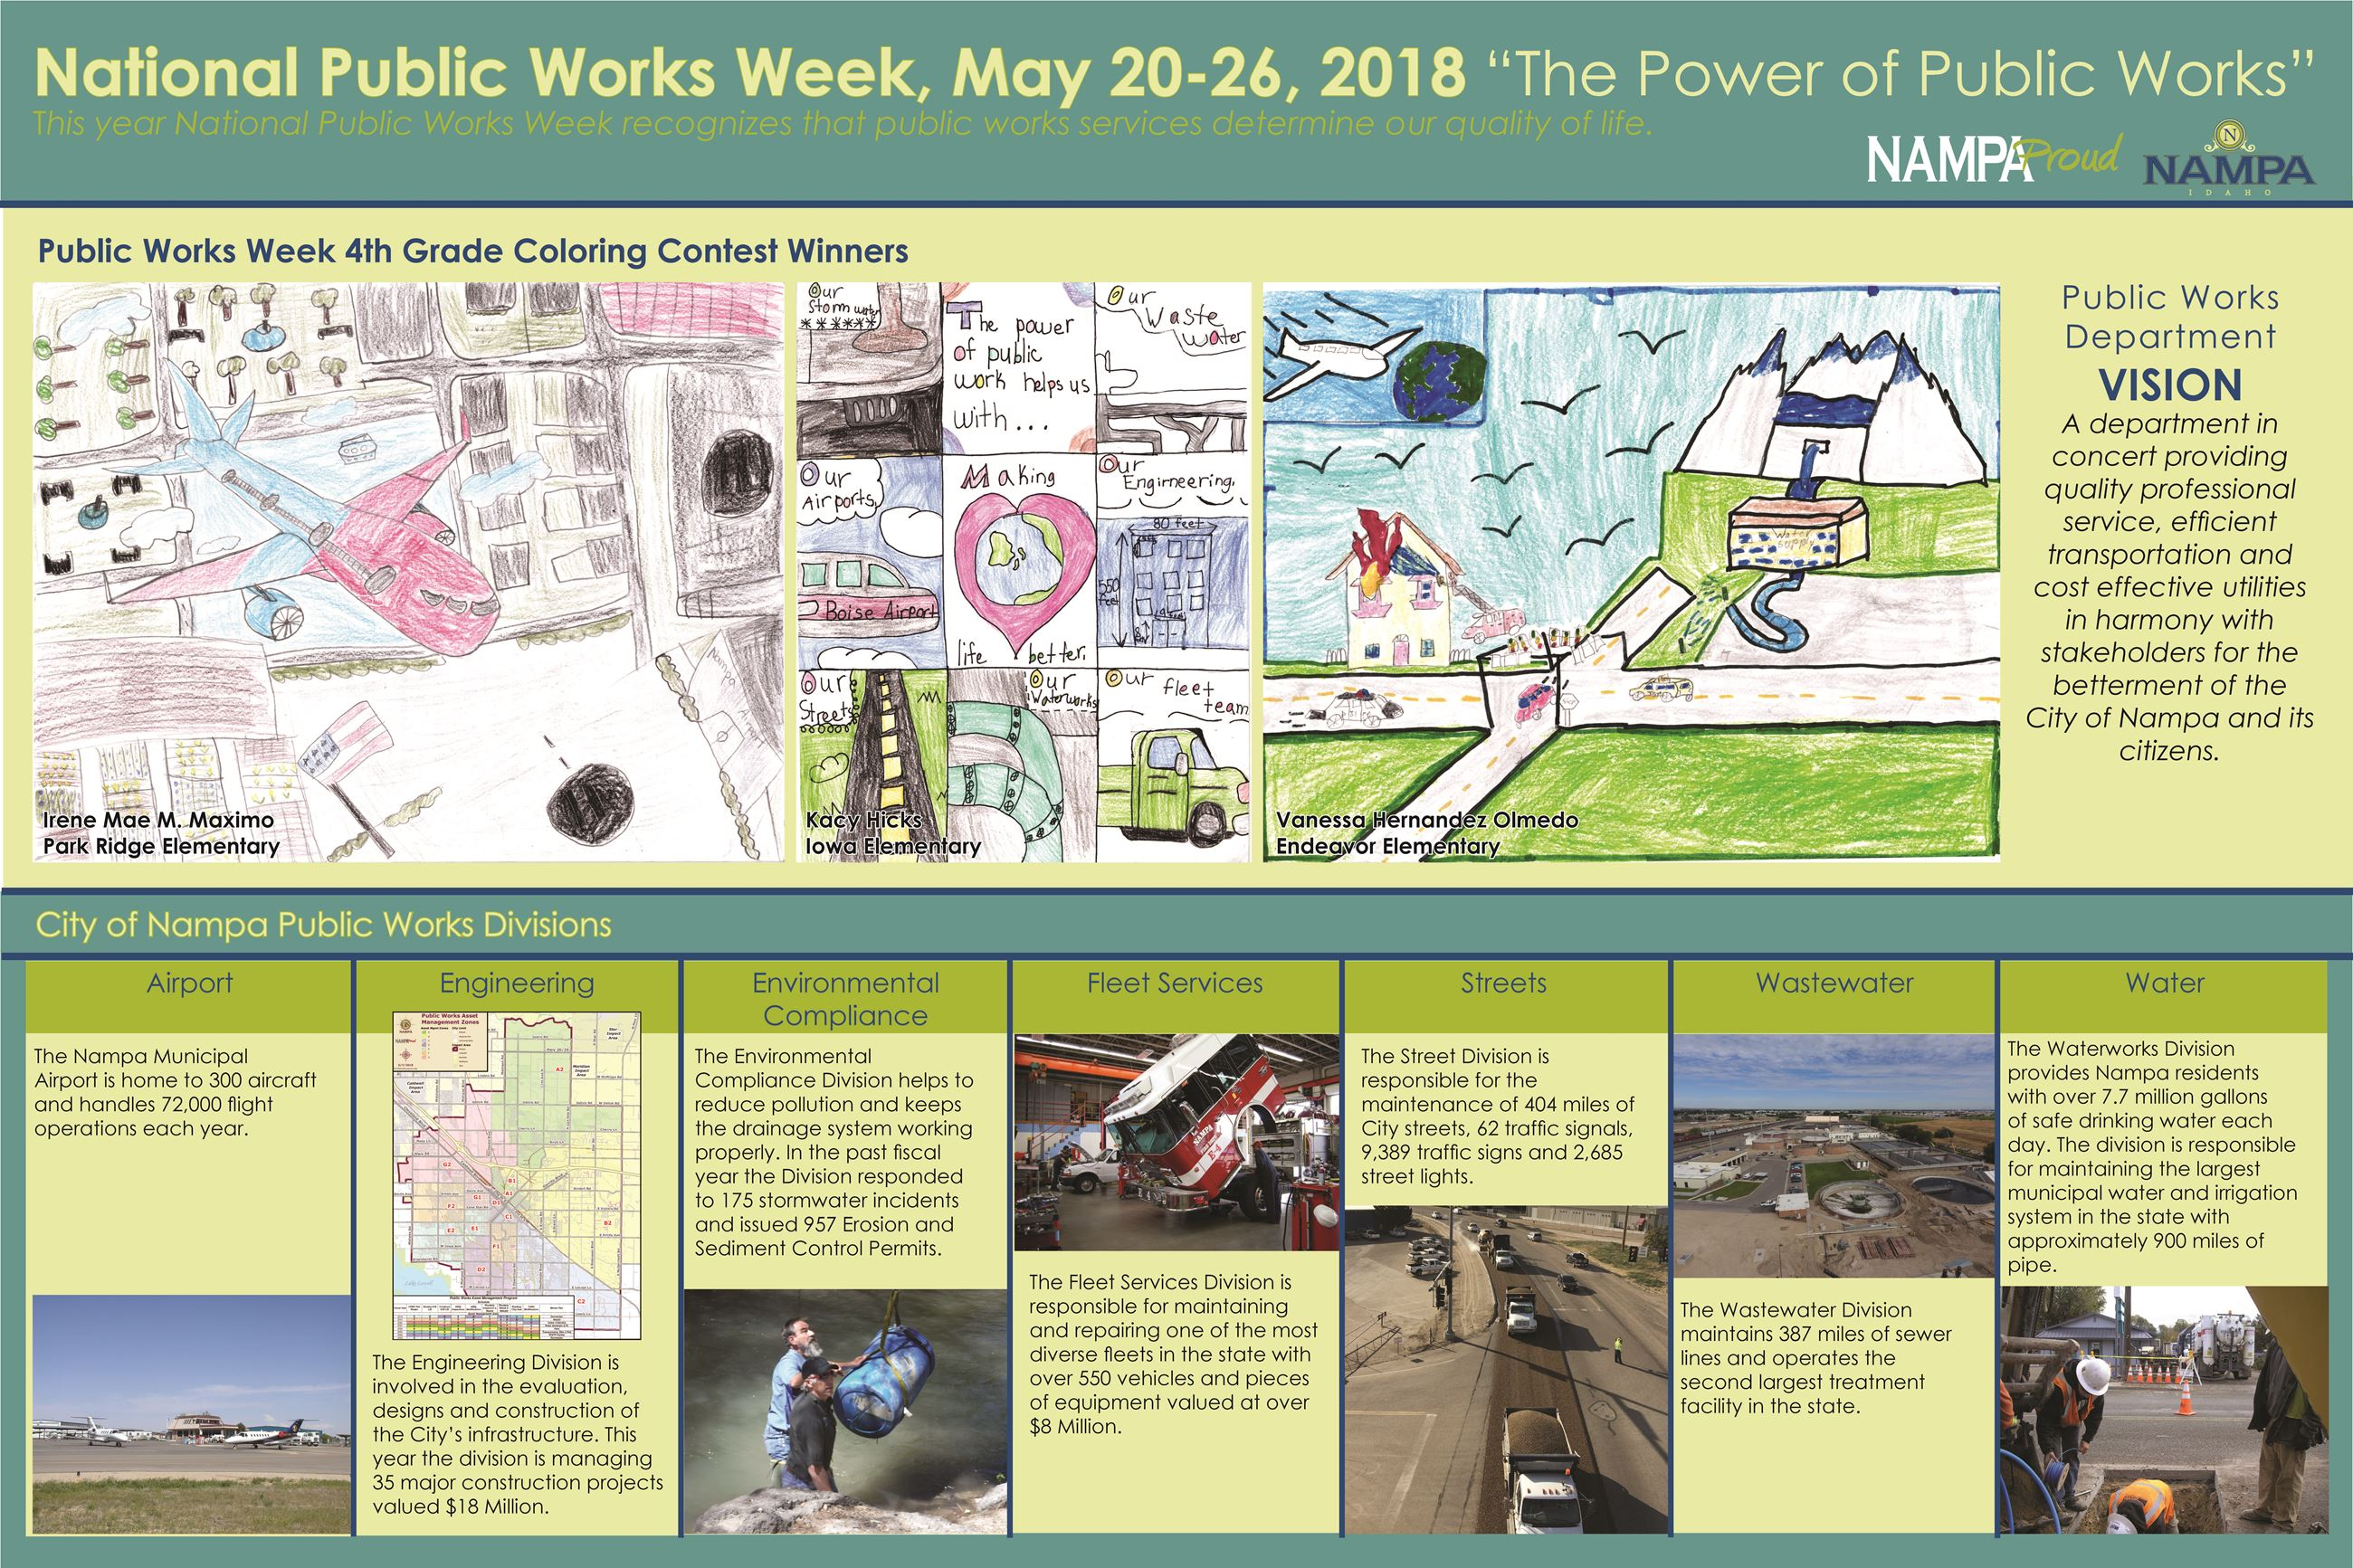 05 21 18 Public Works Display press release attachment